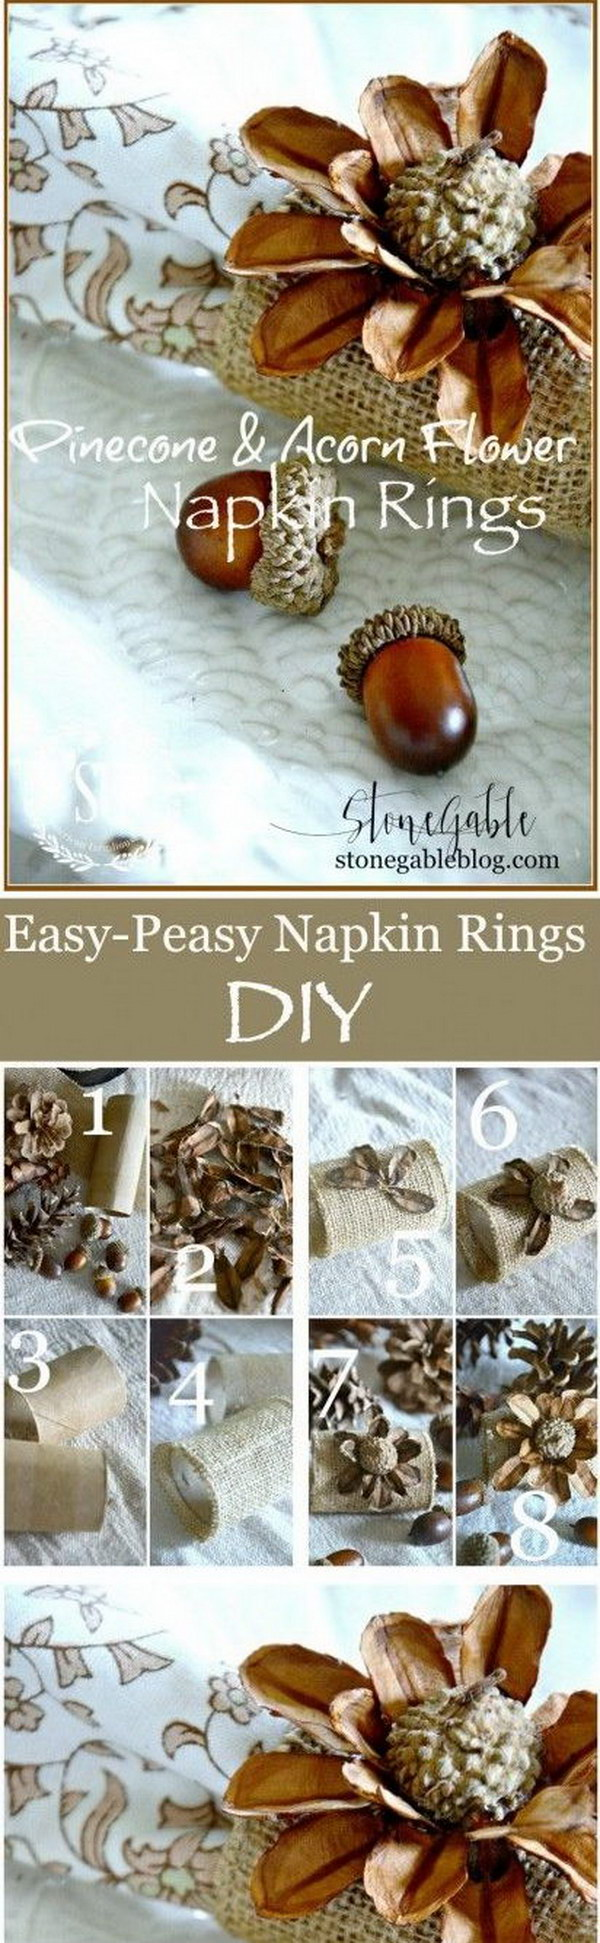 Pinecone and Acorn Flower Napkin Rings